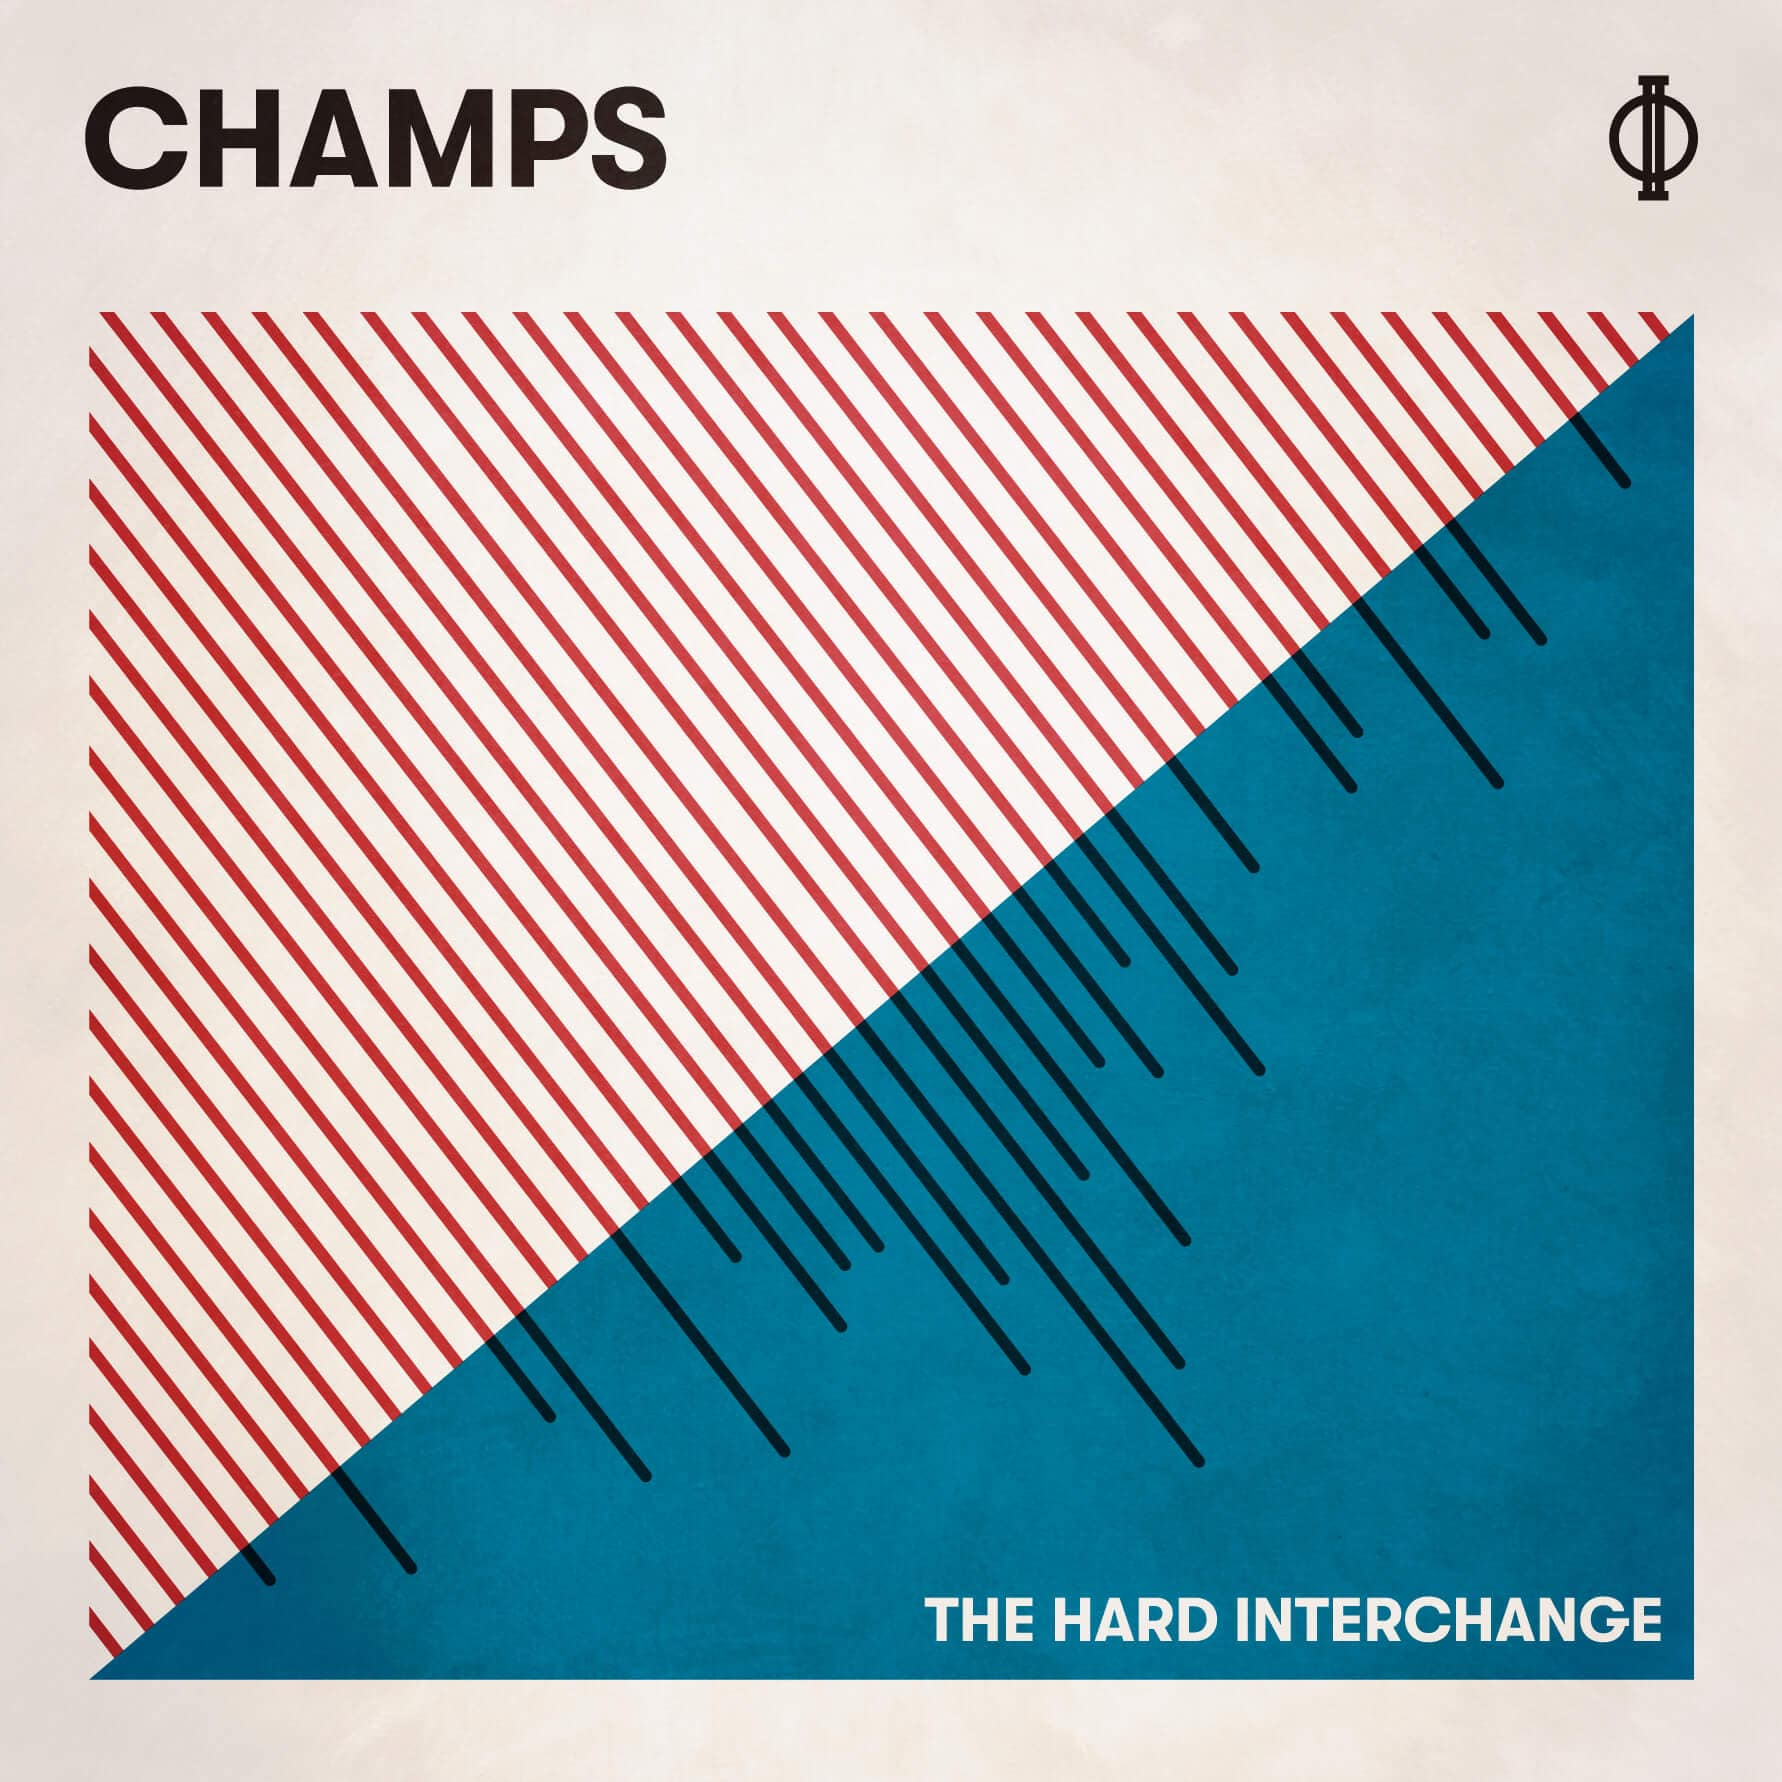 Champs - The Hard Interchange Artwork